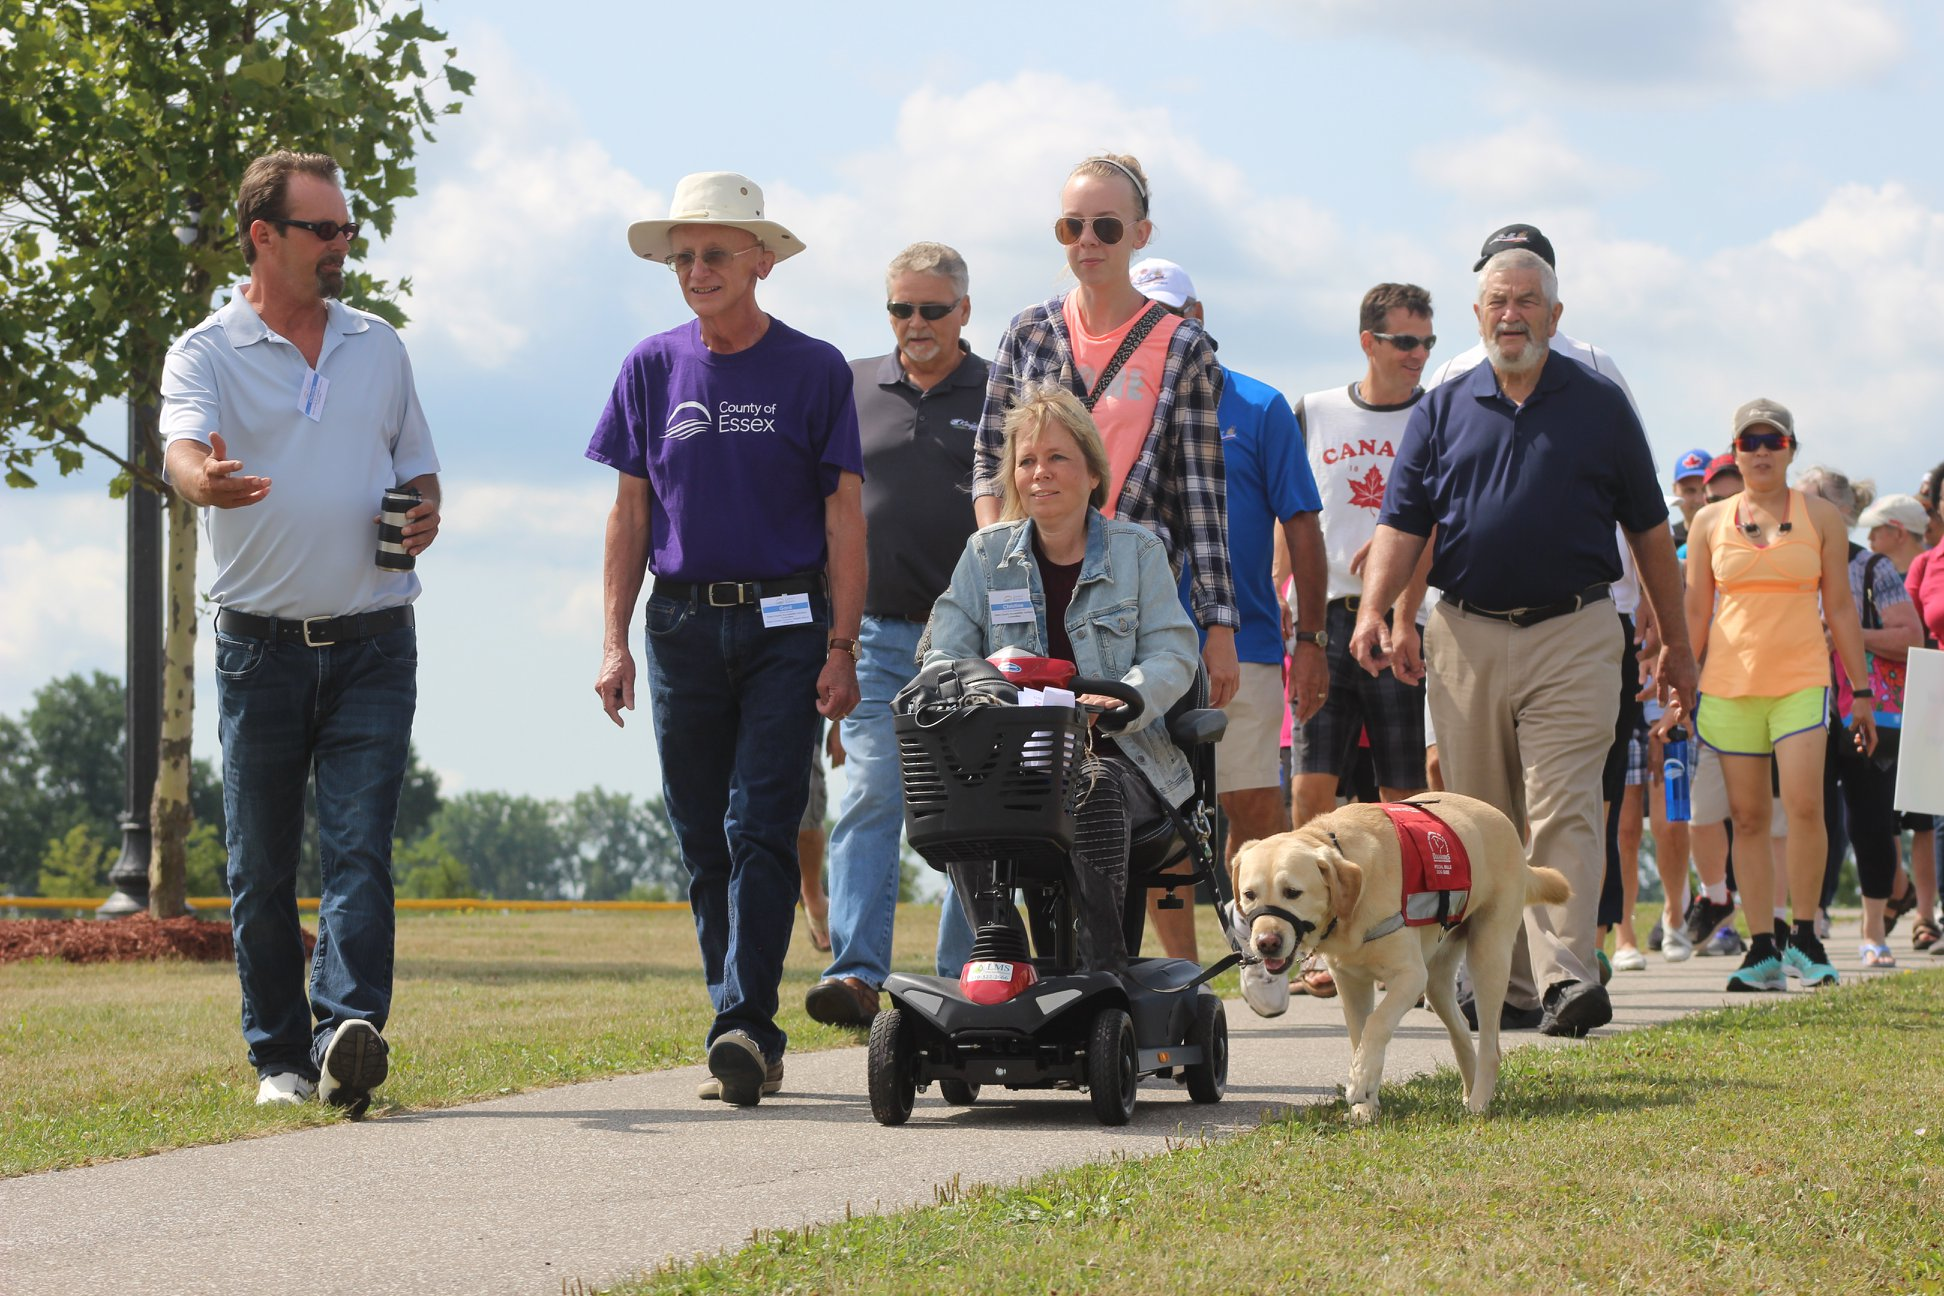 Participants walk and use a wheelchair with a service dog during the inaugural Celebrate Our Abilities Accessibility Awareness Walk in LaSalle.